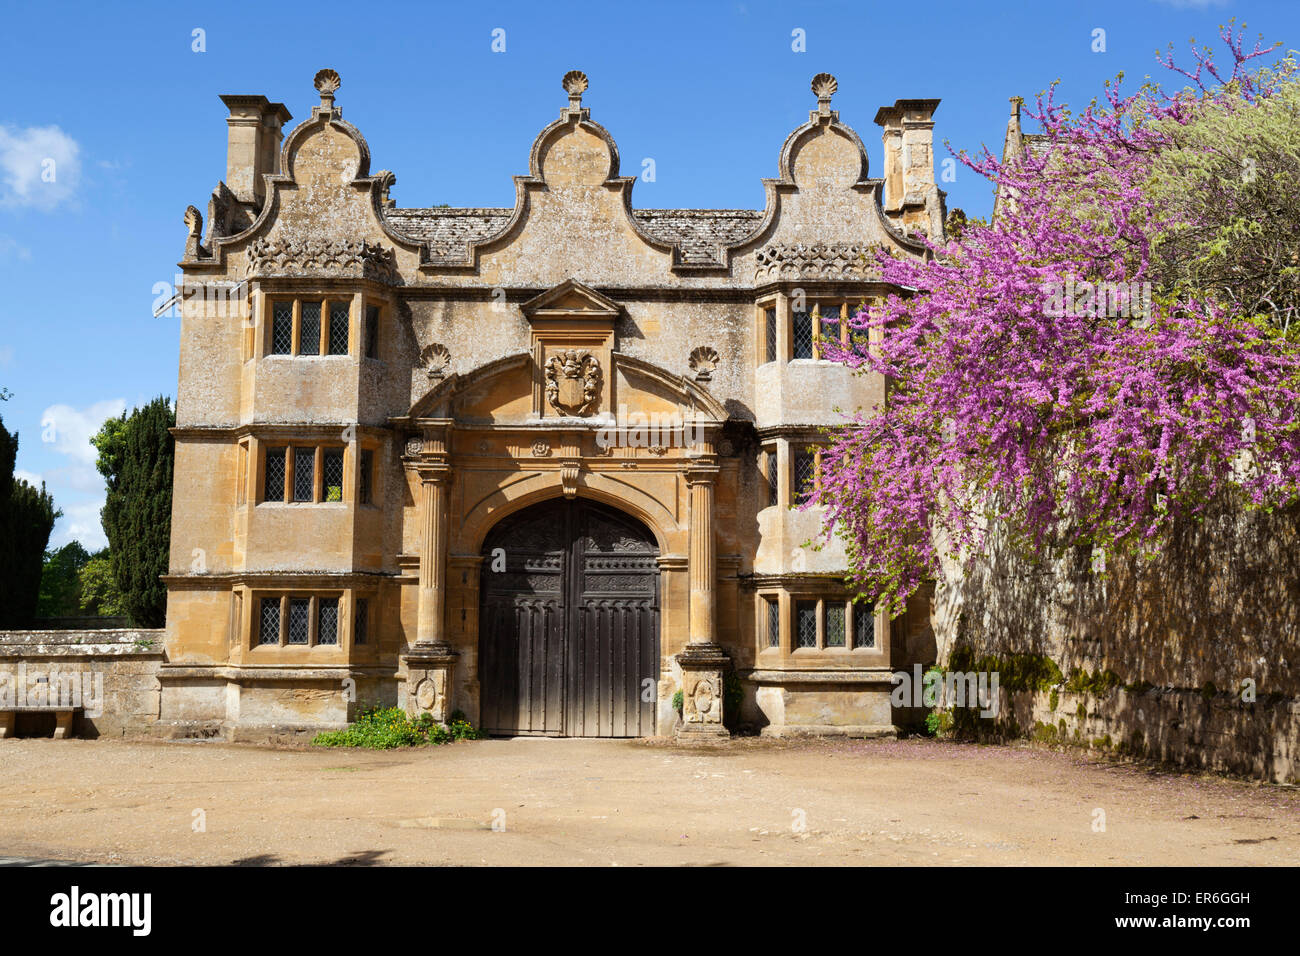 Gatehouse of Stanway House, Stanway, Cotswolds, Gloucestershire, England, United Kingdom, Europe - Stock Image